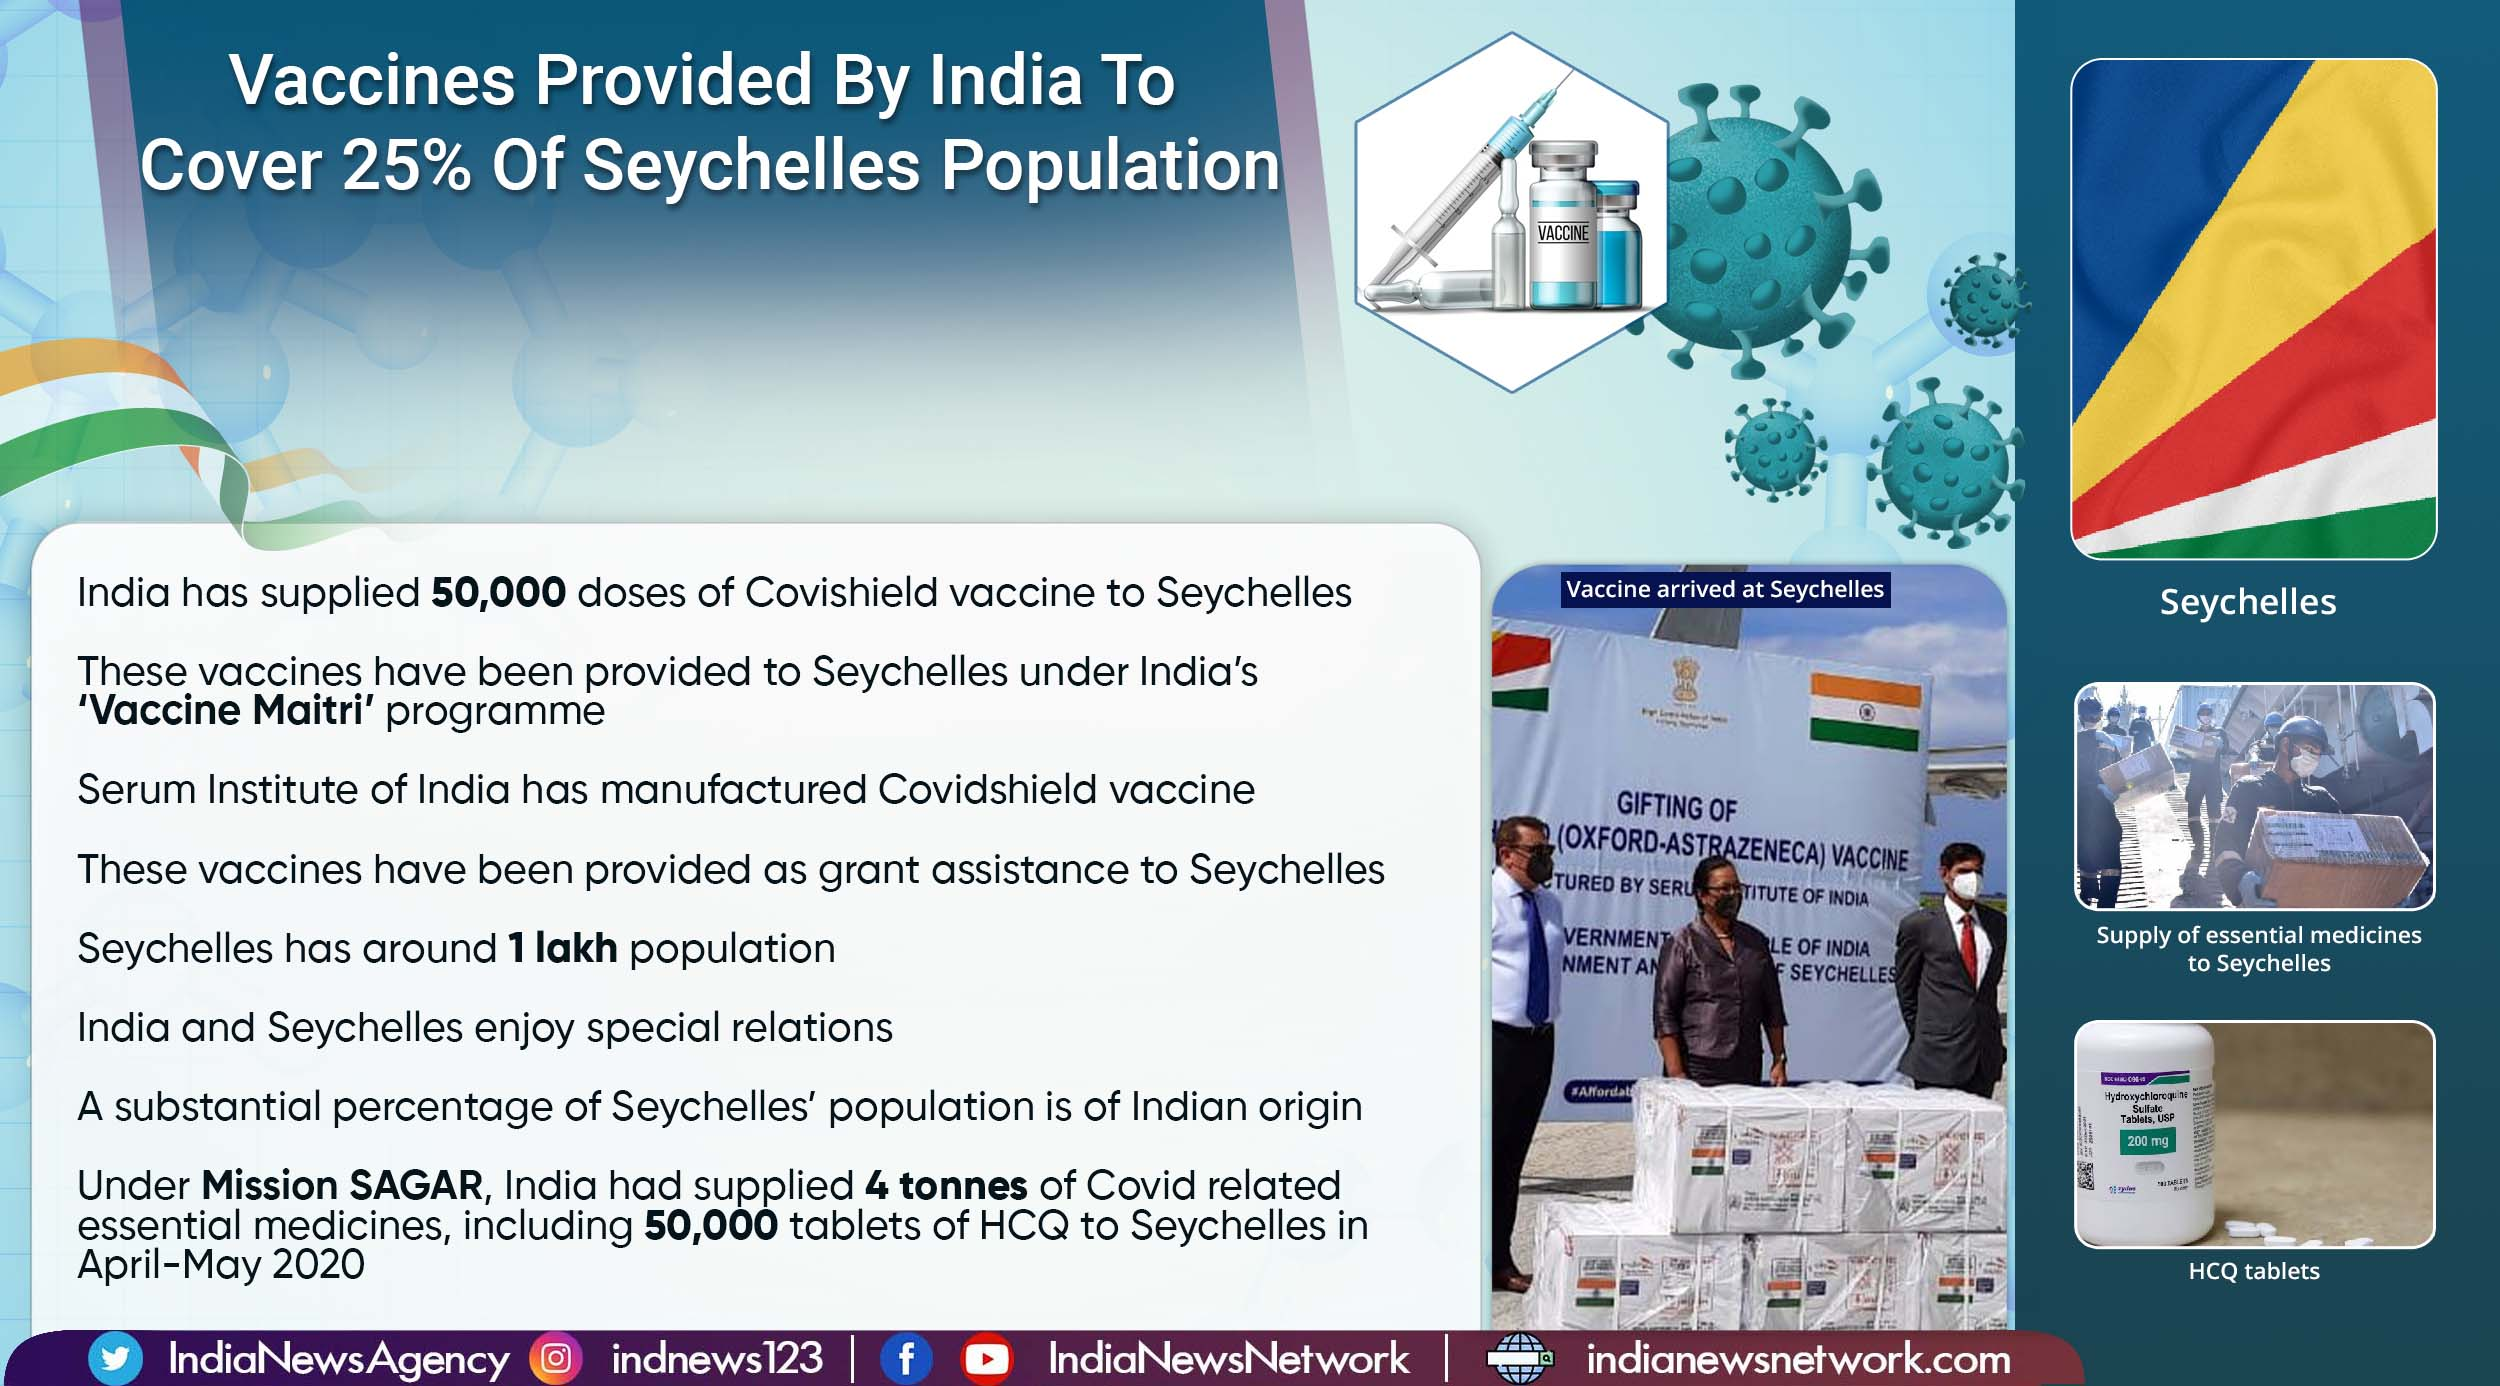 Seychelles receives 50,000 doses of vaccines from India